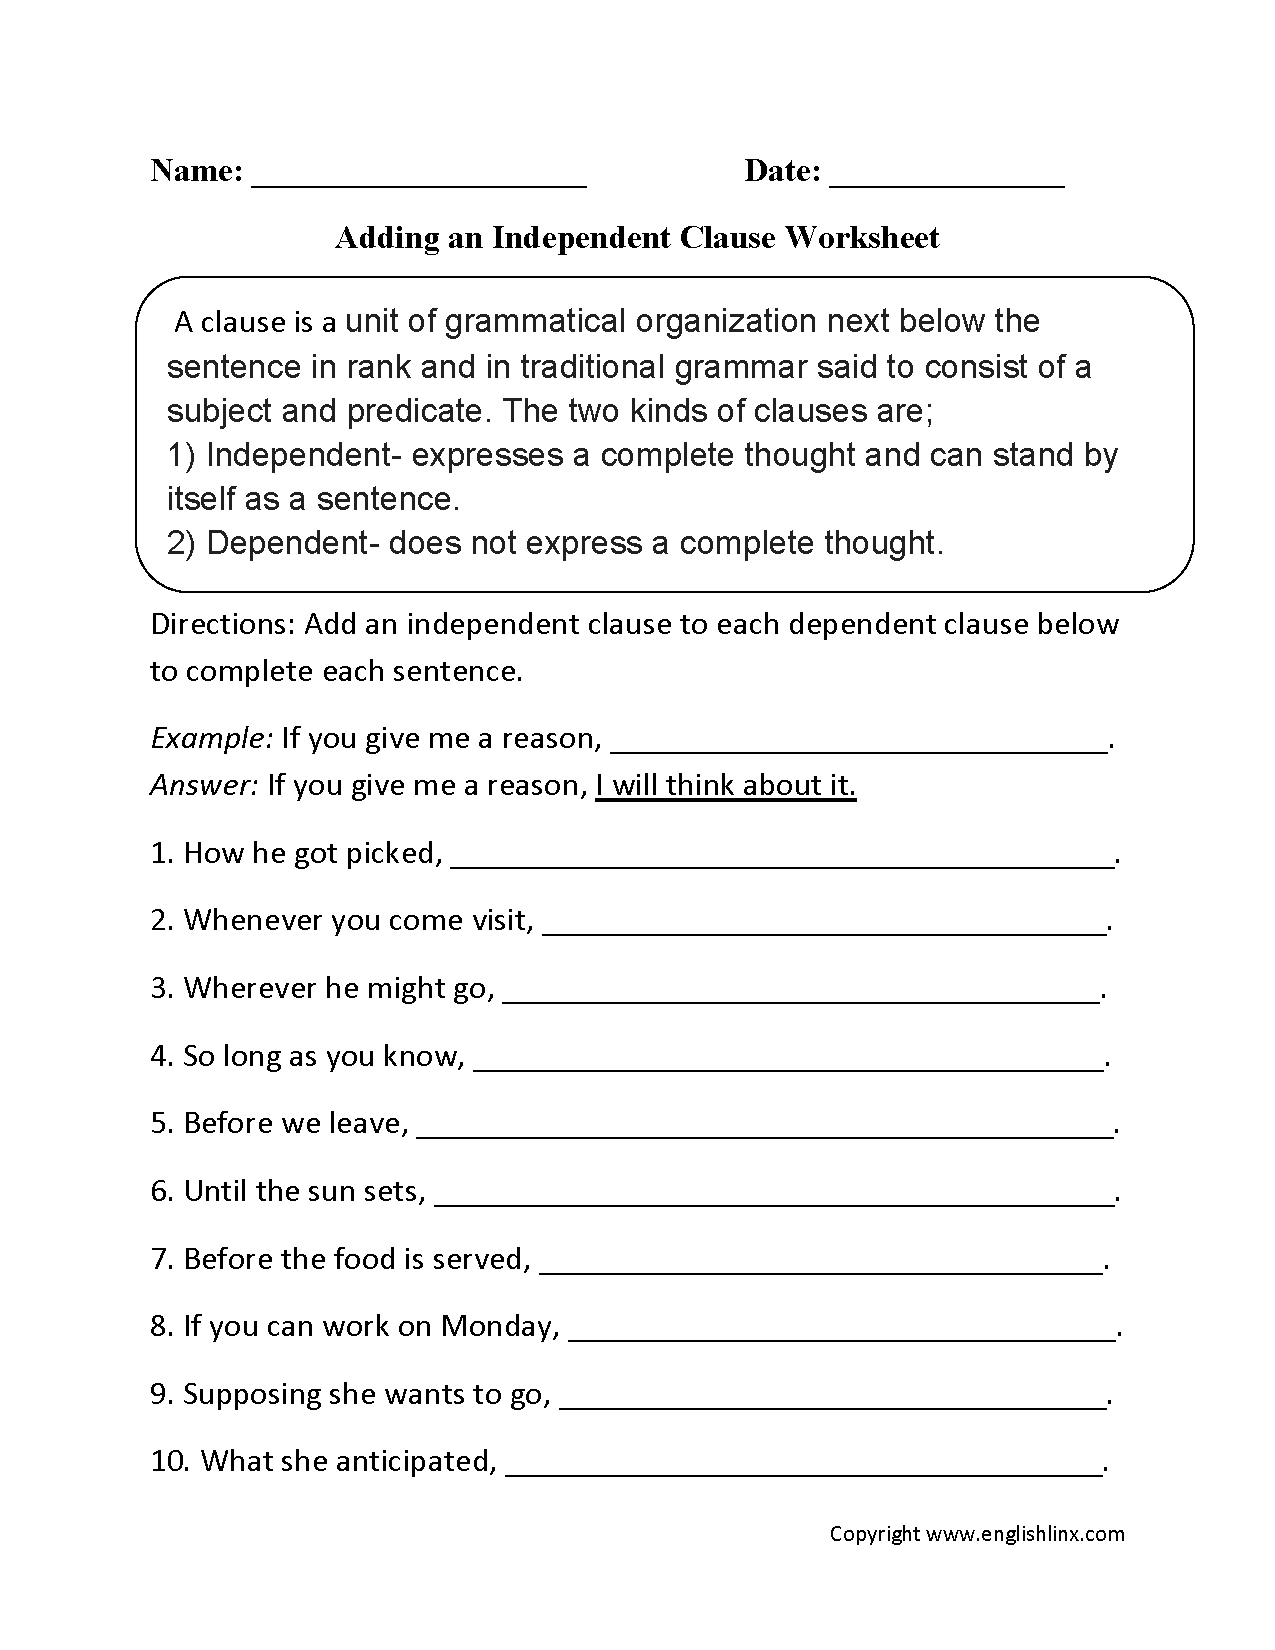 Free Worksheet Independent Reading Worksheets englishlinx com clauses worksheets adding an inependent clause worksheet